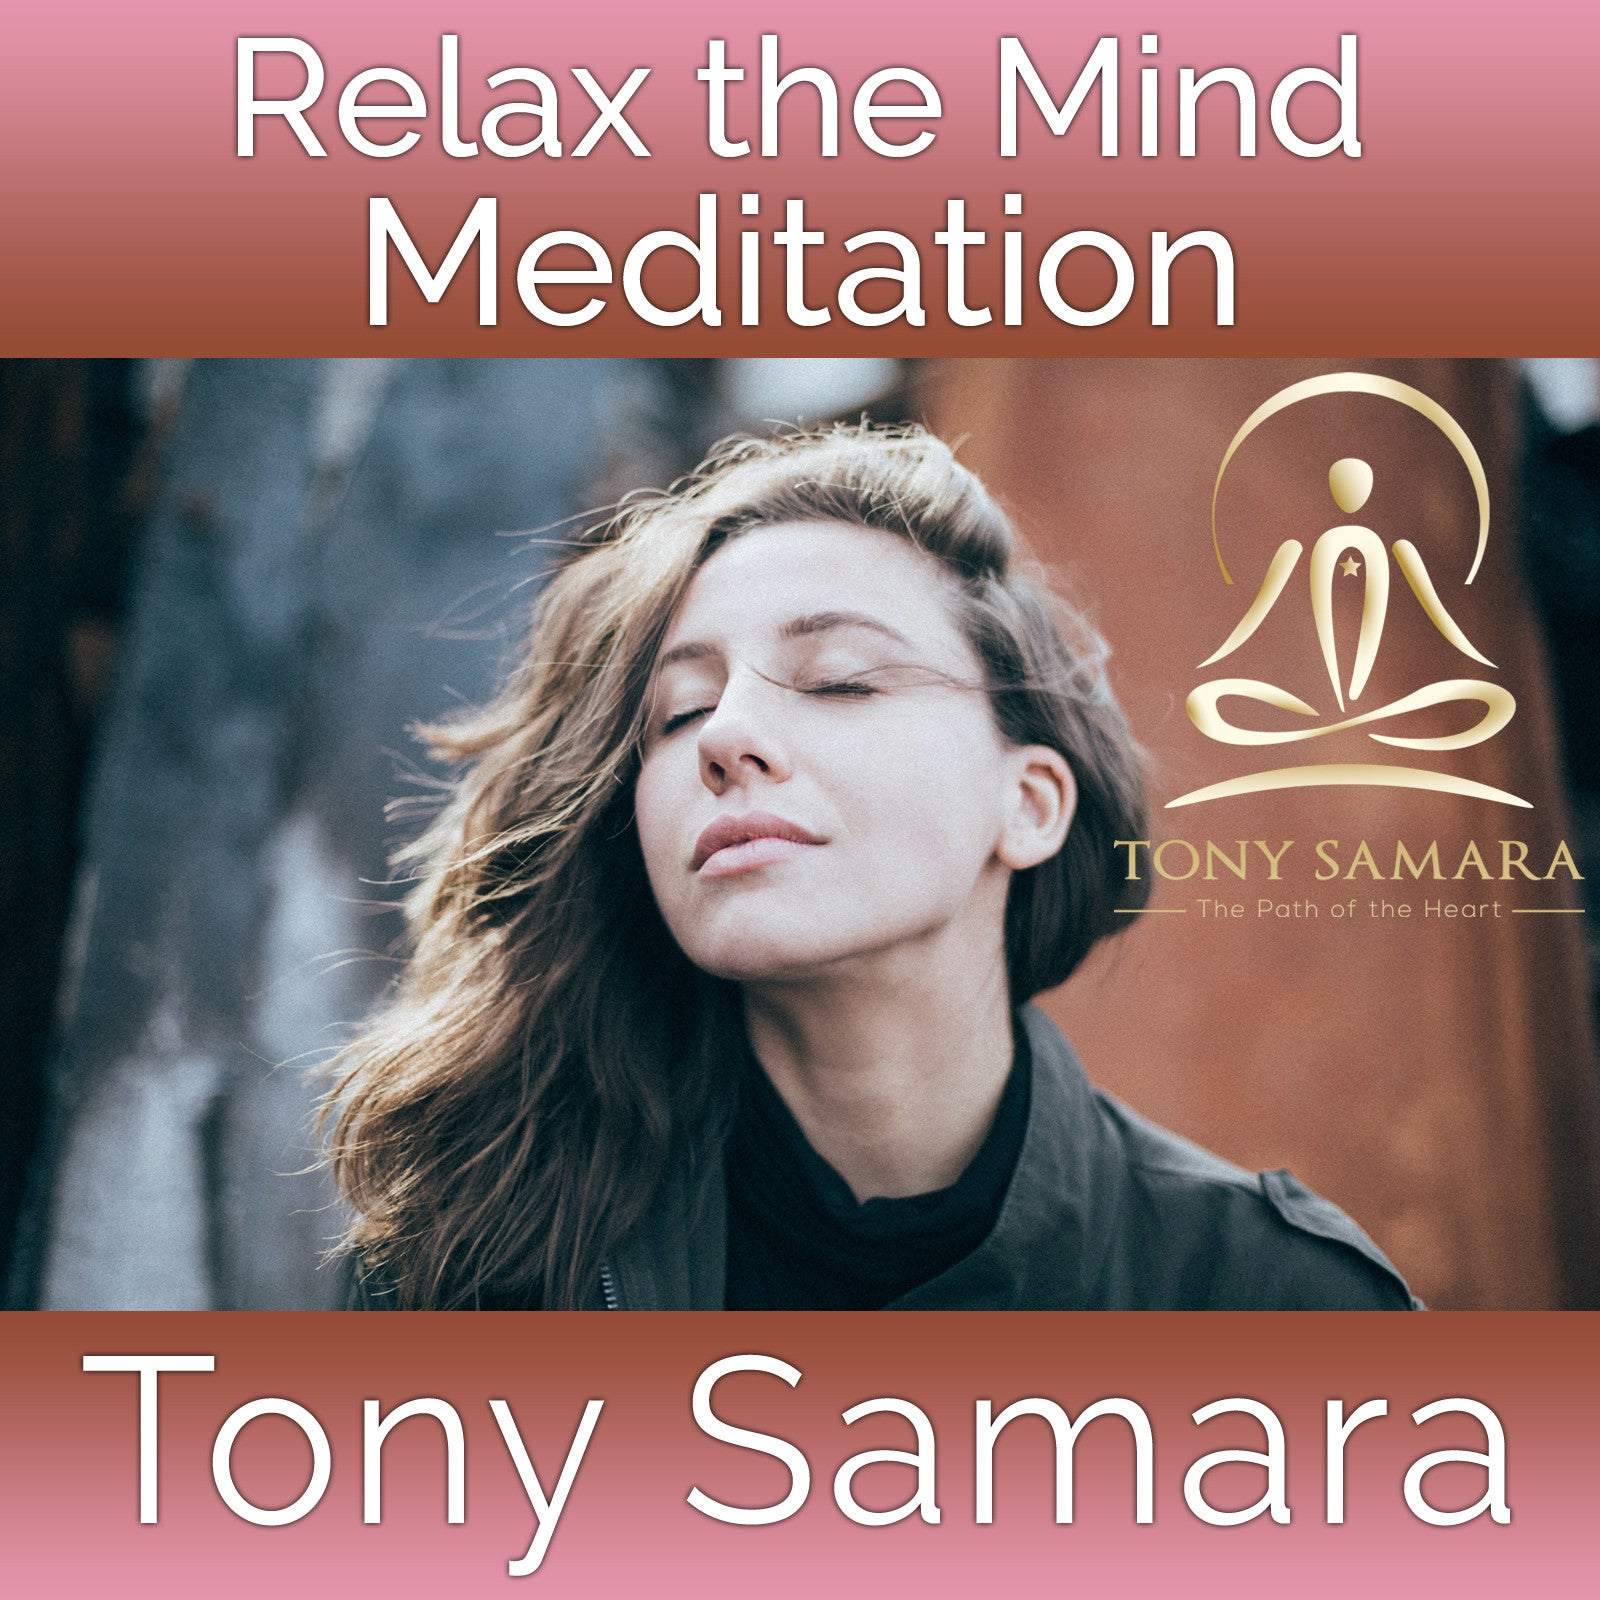 Relax the Mind Meditation (MP3 Audio Download) - Tony Samara Meditation